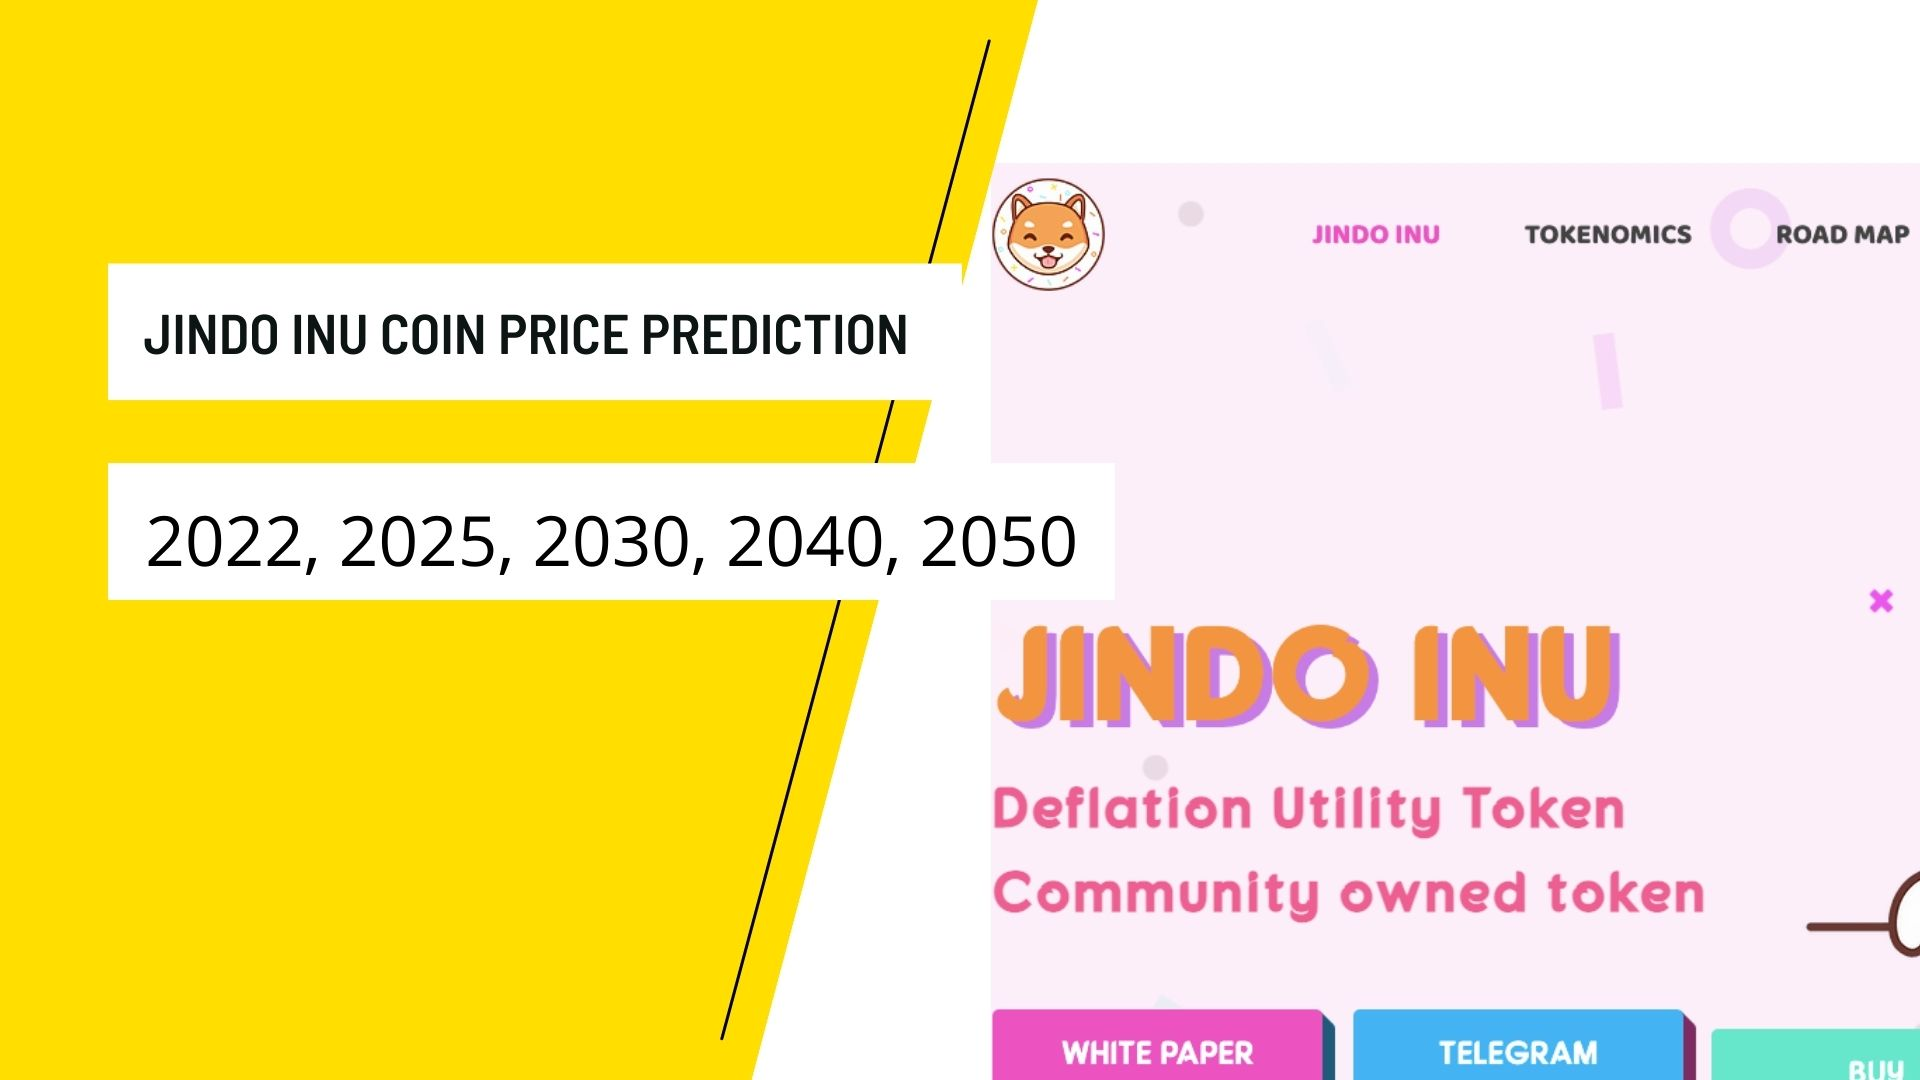 JINDO INU Coin Price Prediction in INR